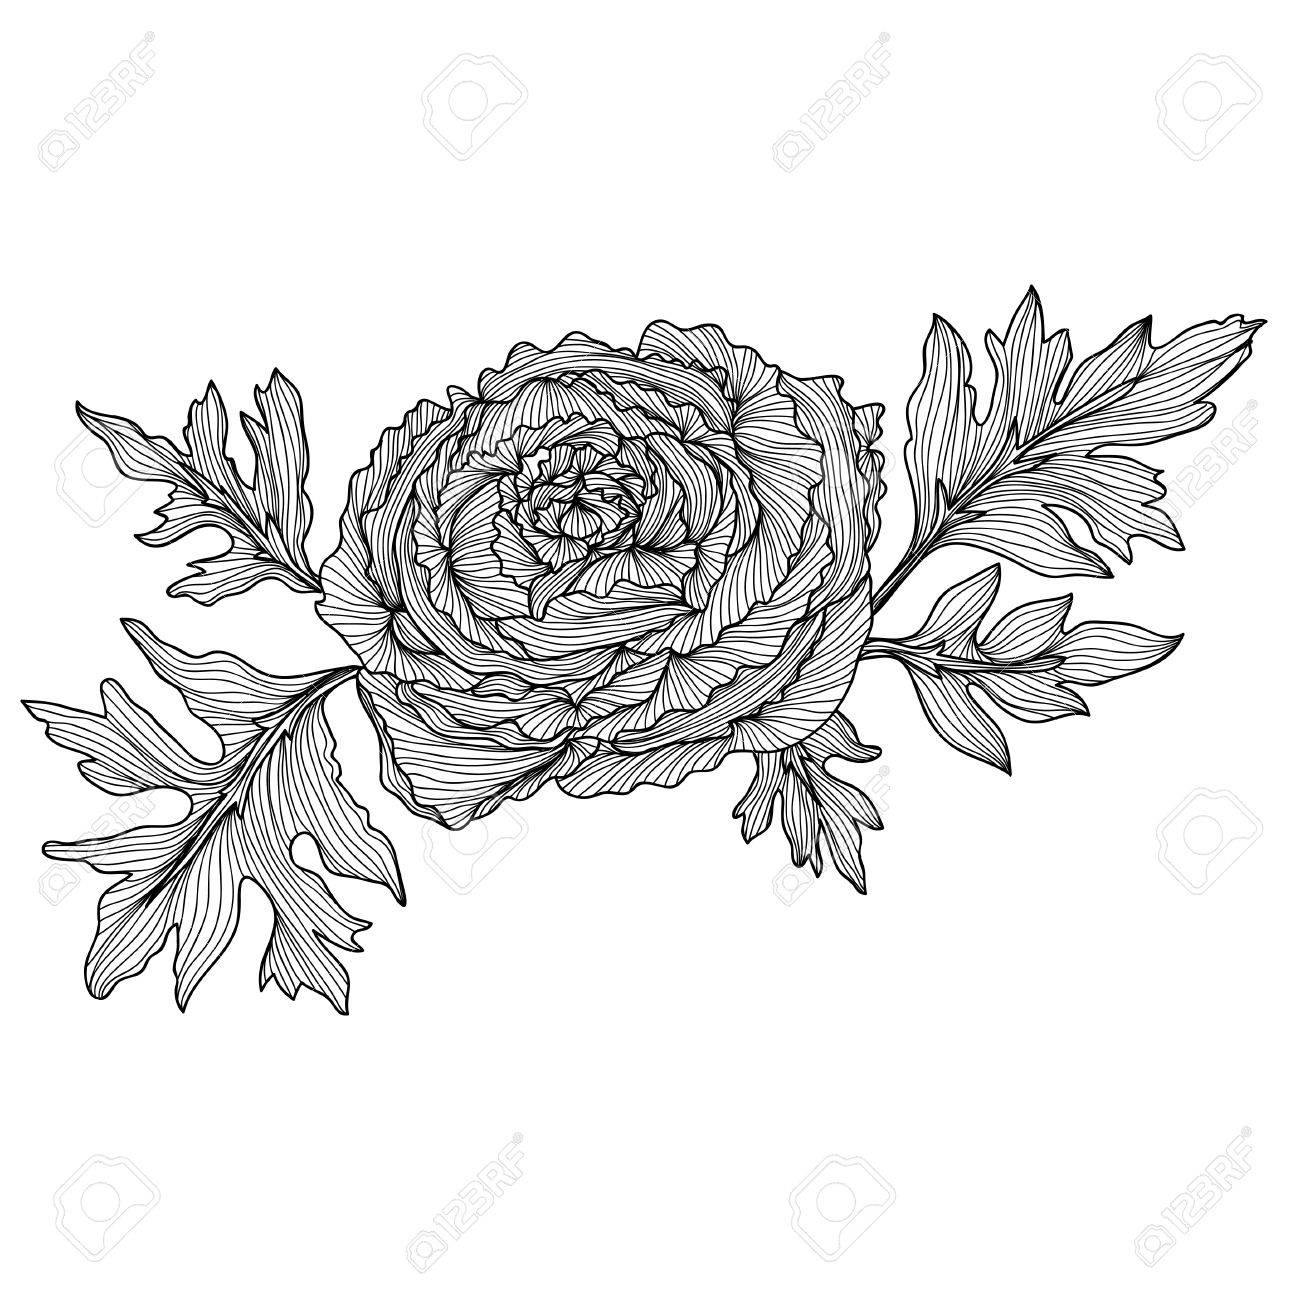 Floral Decoration elegant decorative ranunculus flowers, design element. floral